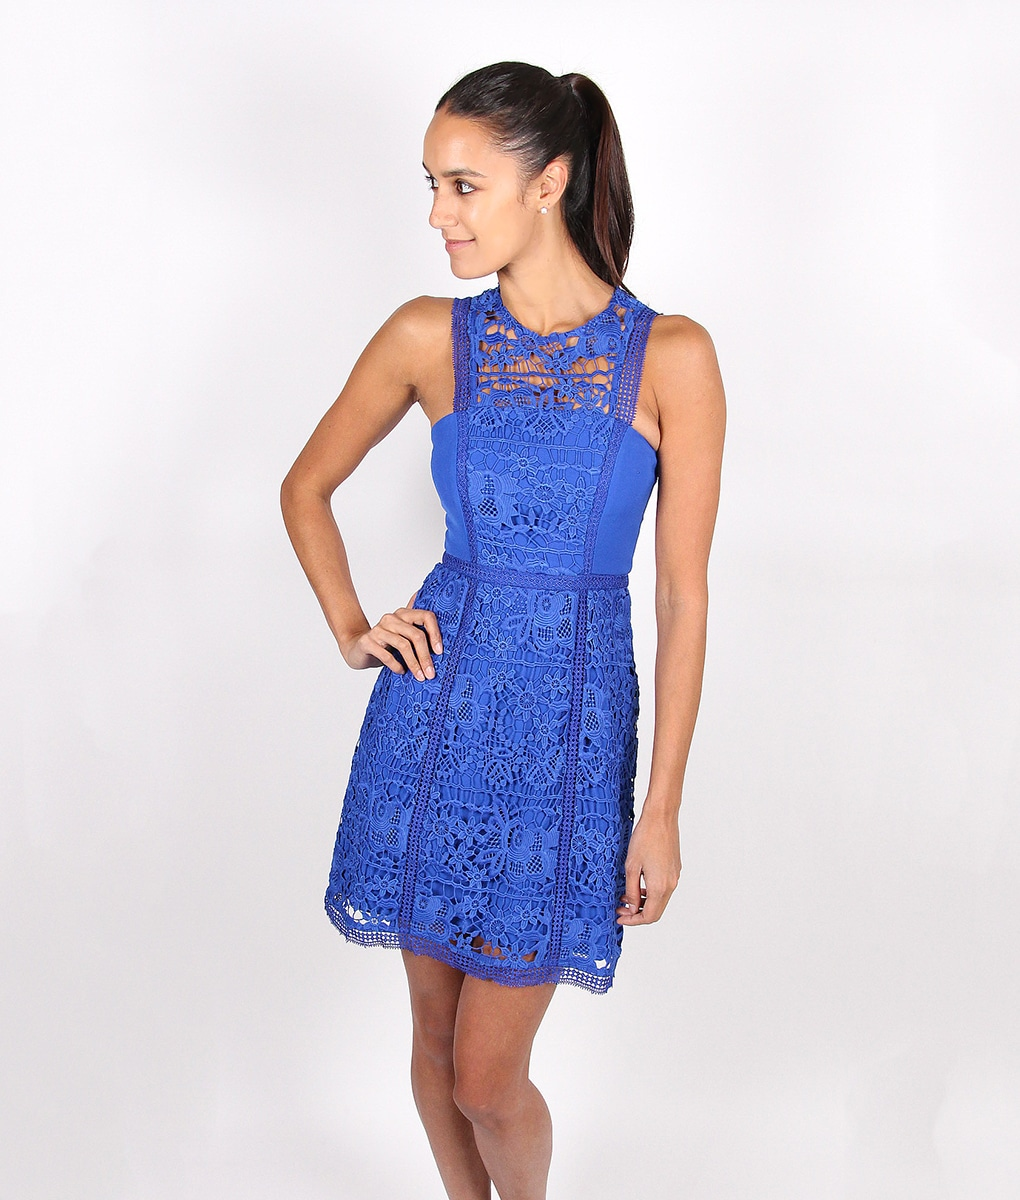 Alila-Bright-Blue-Lace-Dress-for-wedding-by-Lumier-by-Bariano